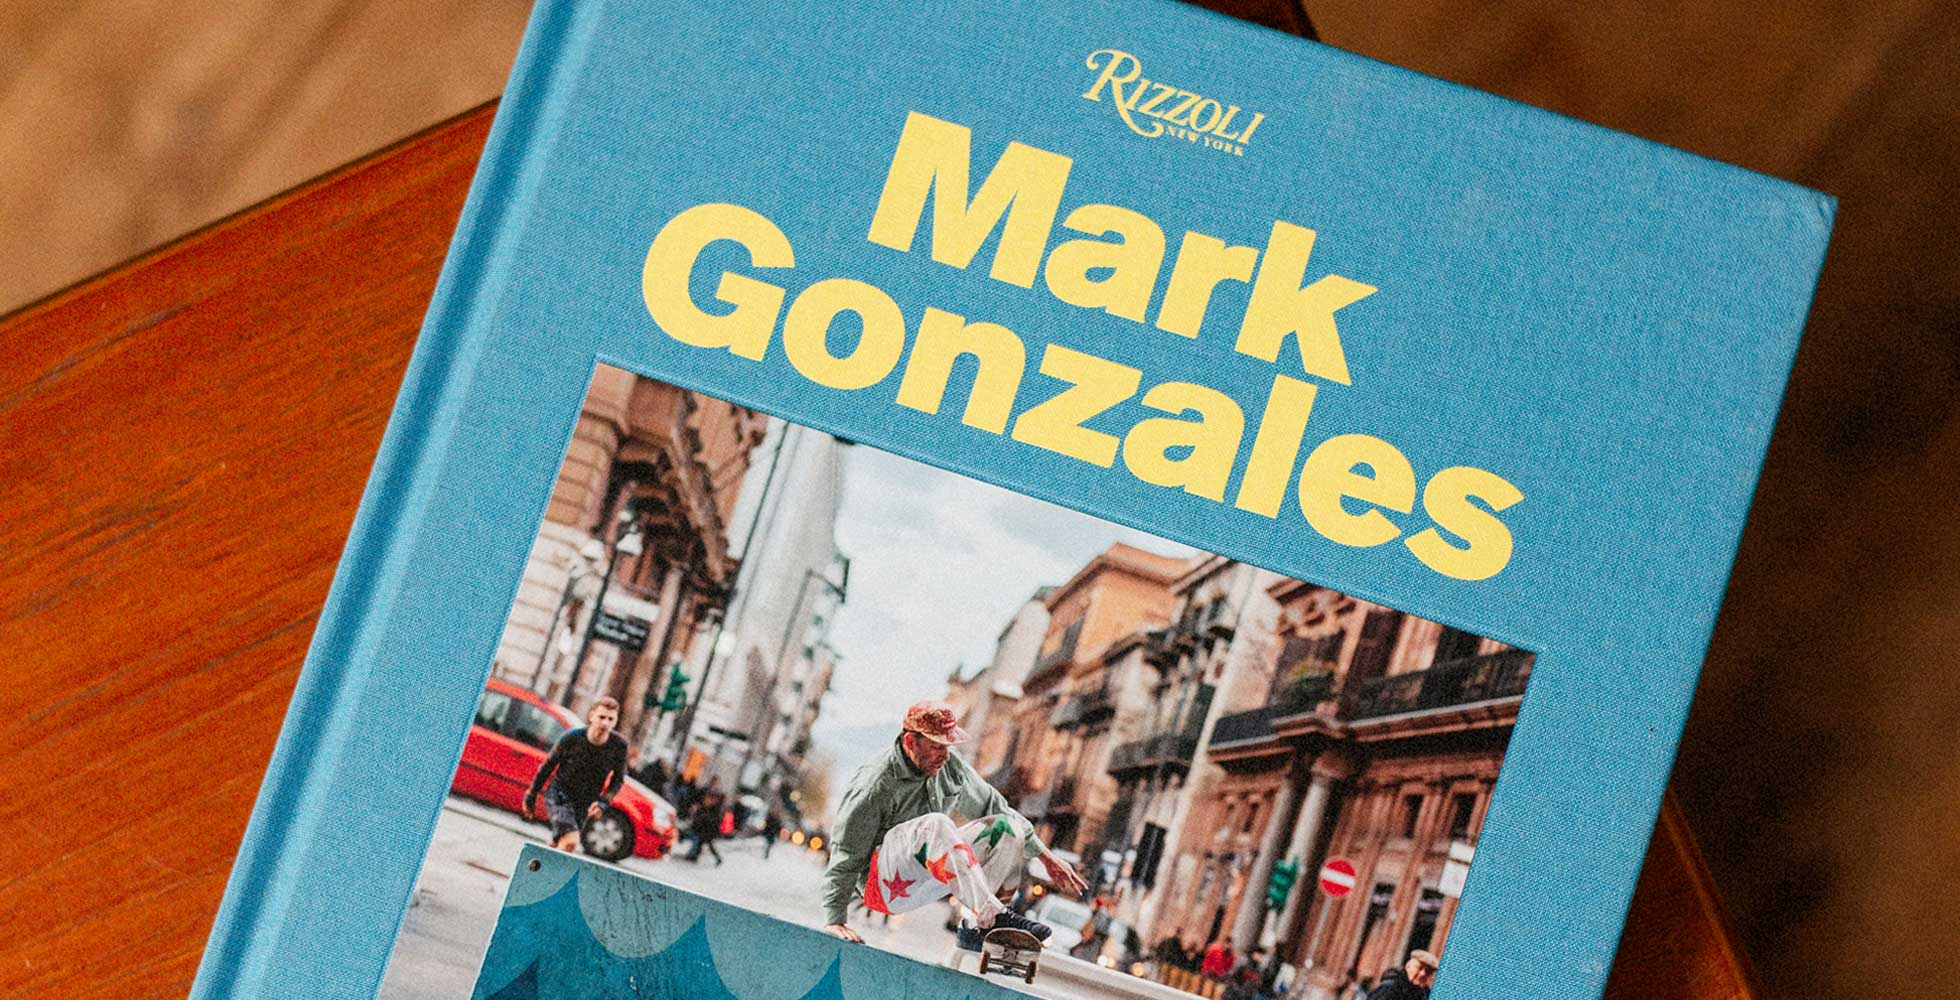 GIVEAWAY: Mark Gonzales Rizzoli Book by Sem Rubio